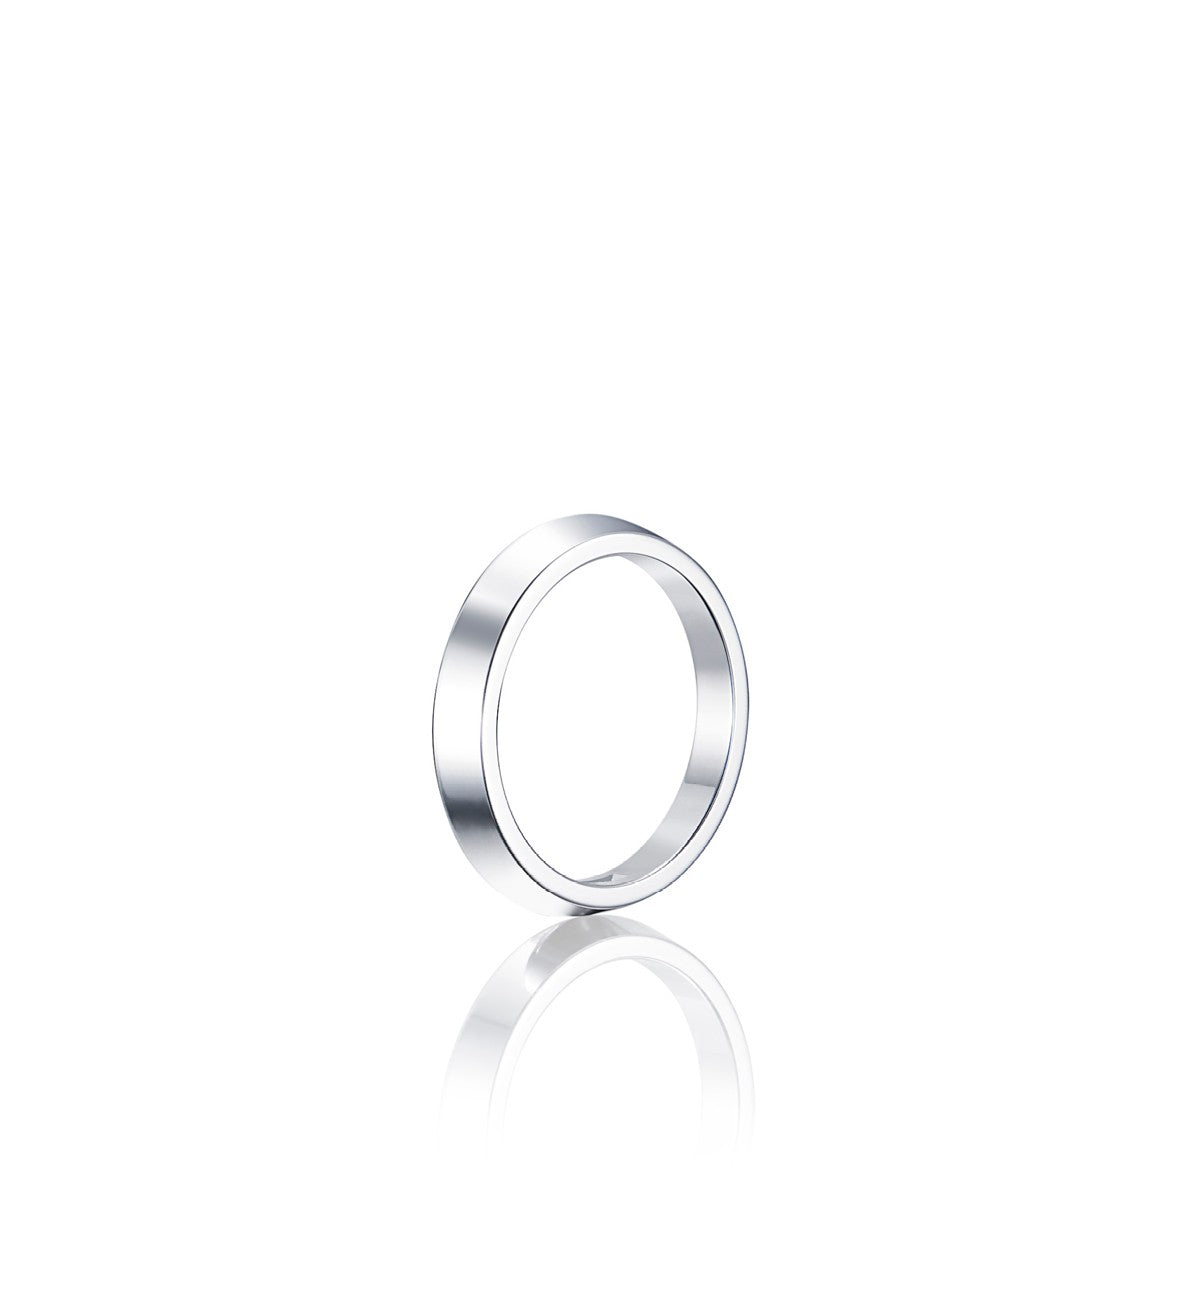 Efva Attling Paramour Wide & Thin Ring sormus